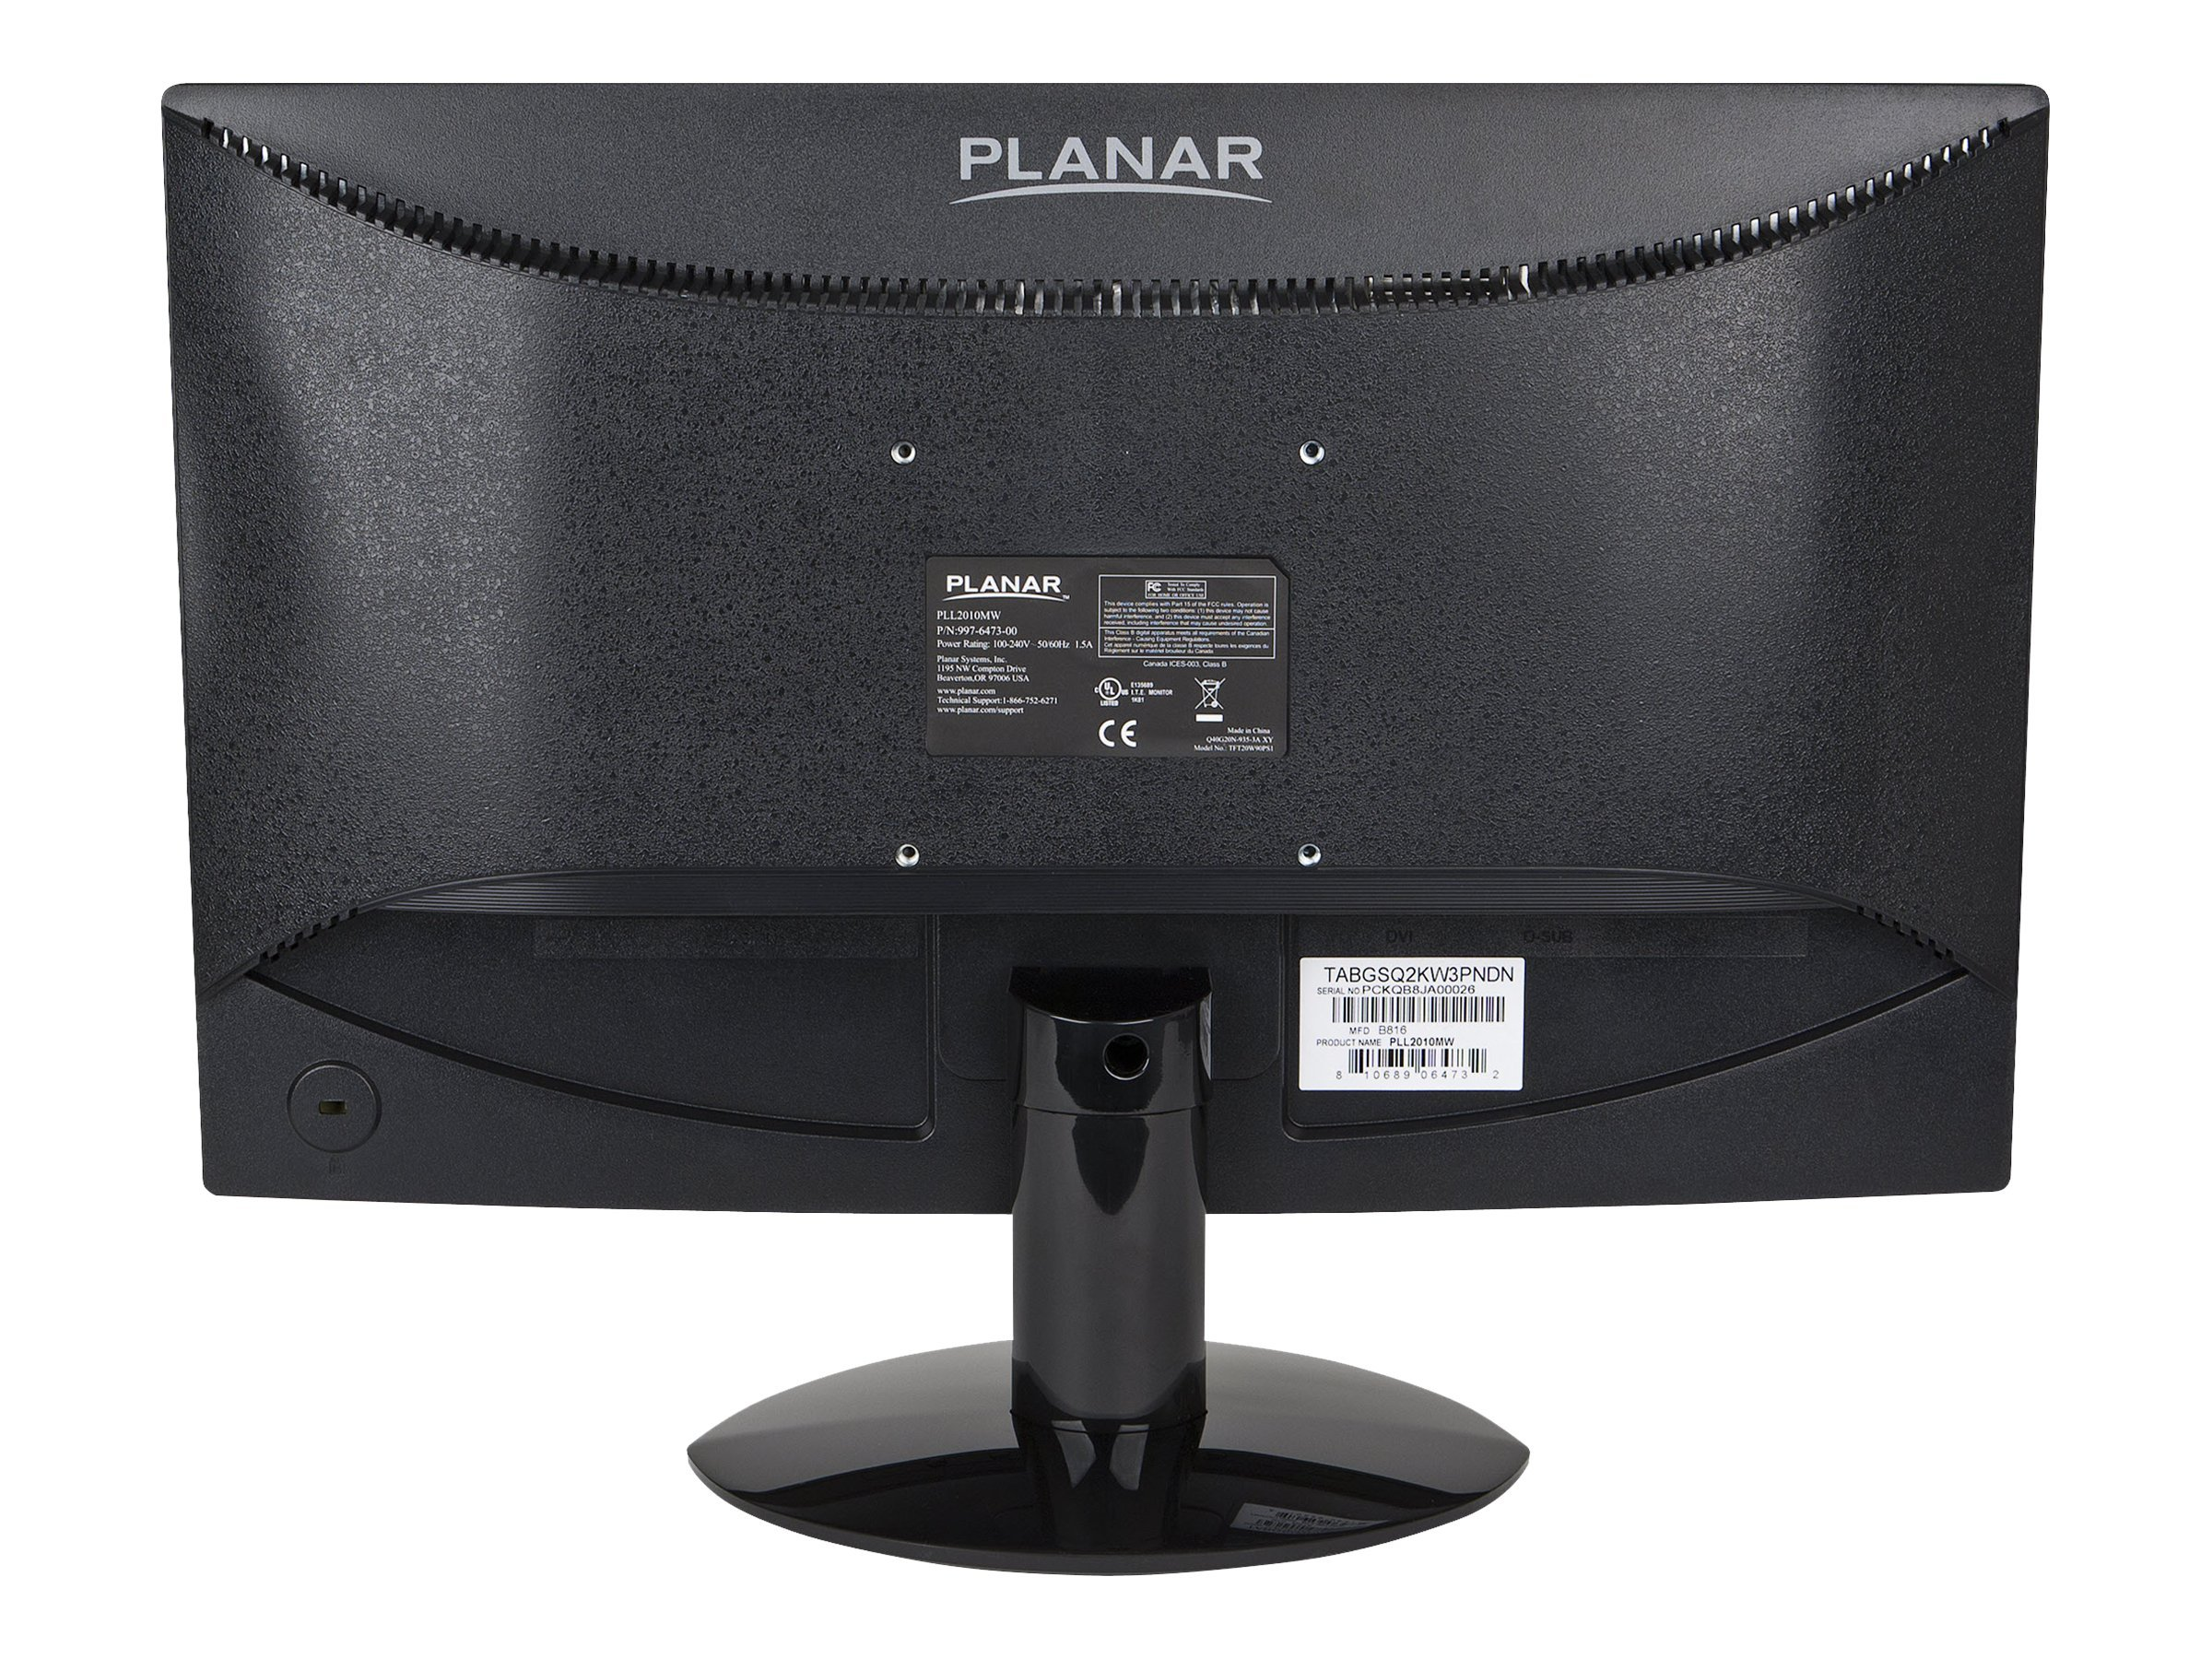 Planar Systems 997-7305-00 Image 3